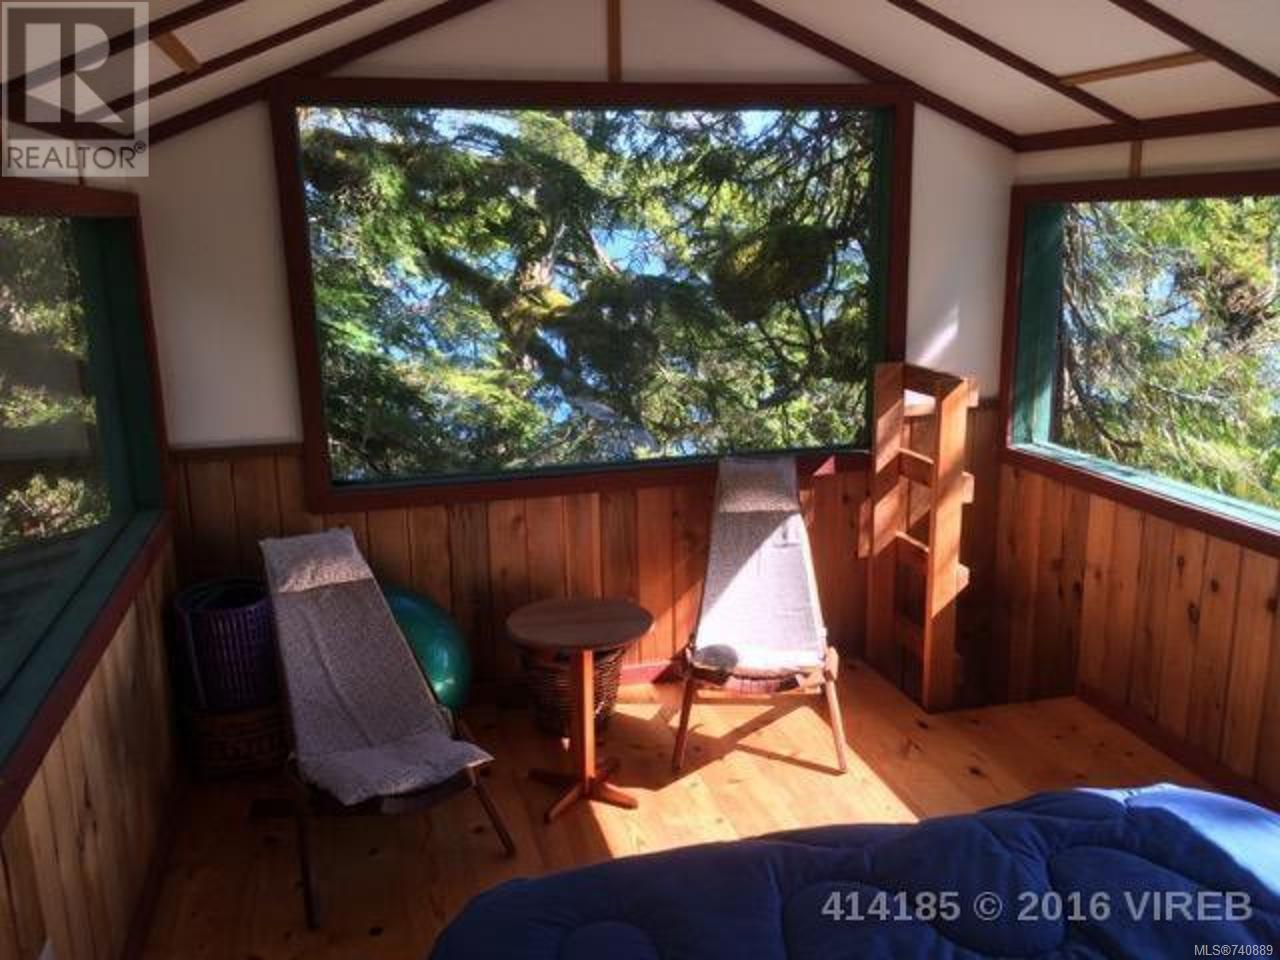 MLS® #740889 - Tofino House For sale Image #16